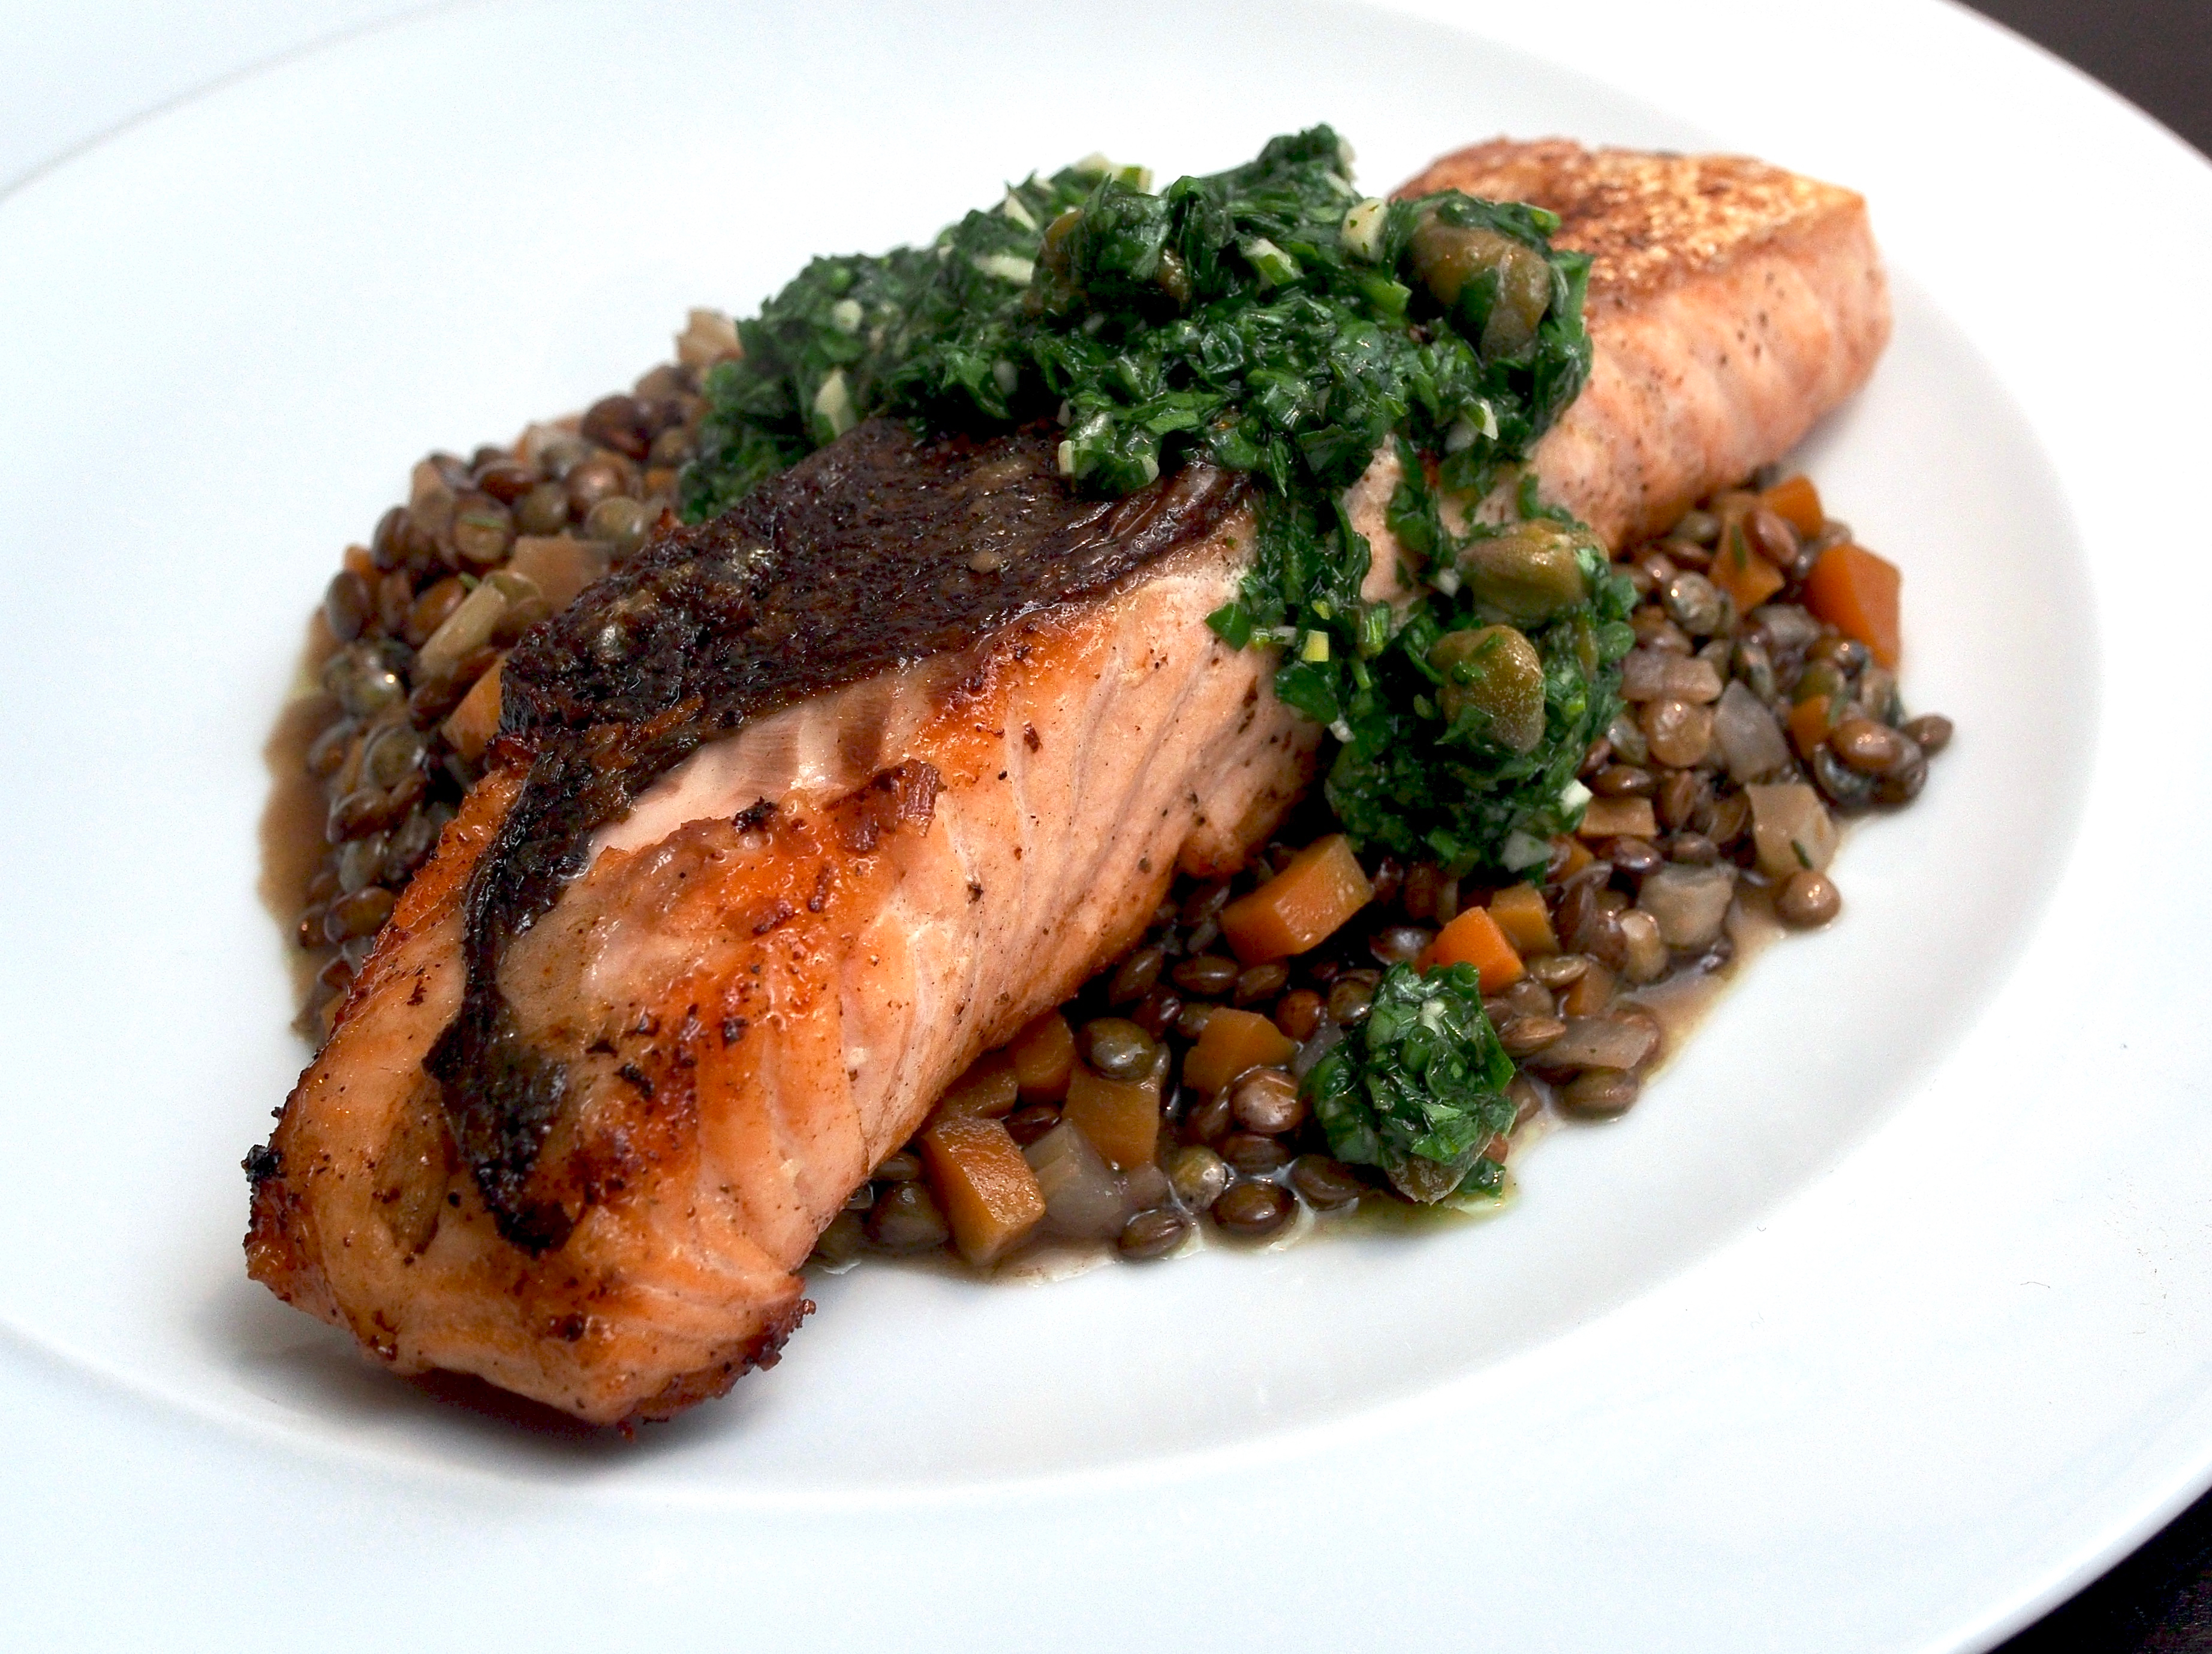 Salmon on lentils with herb relish